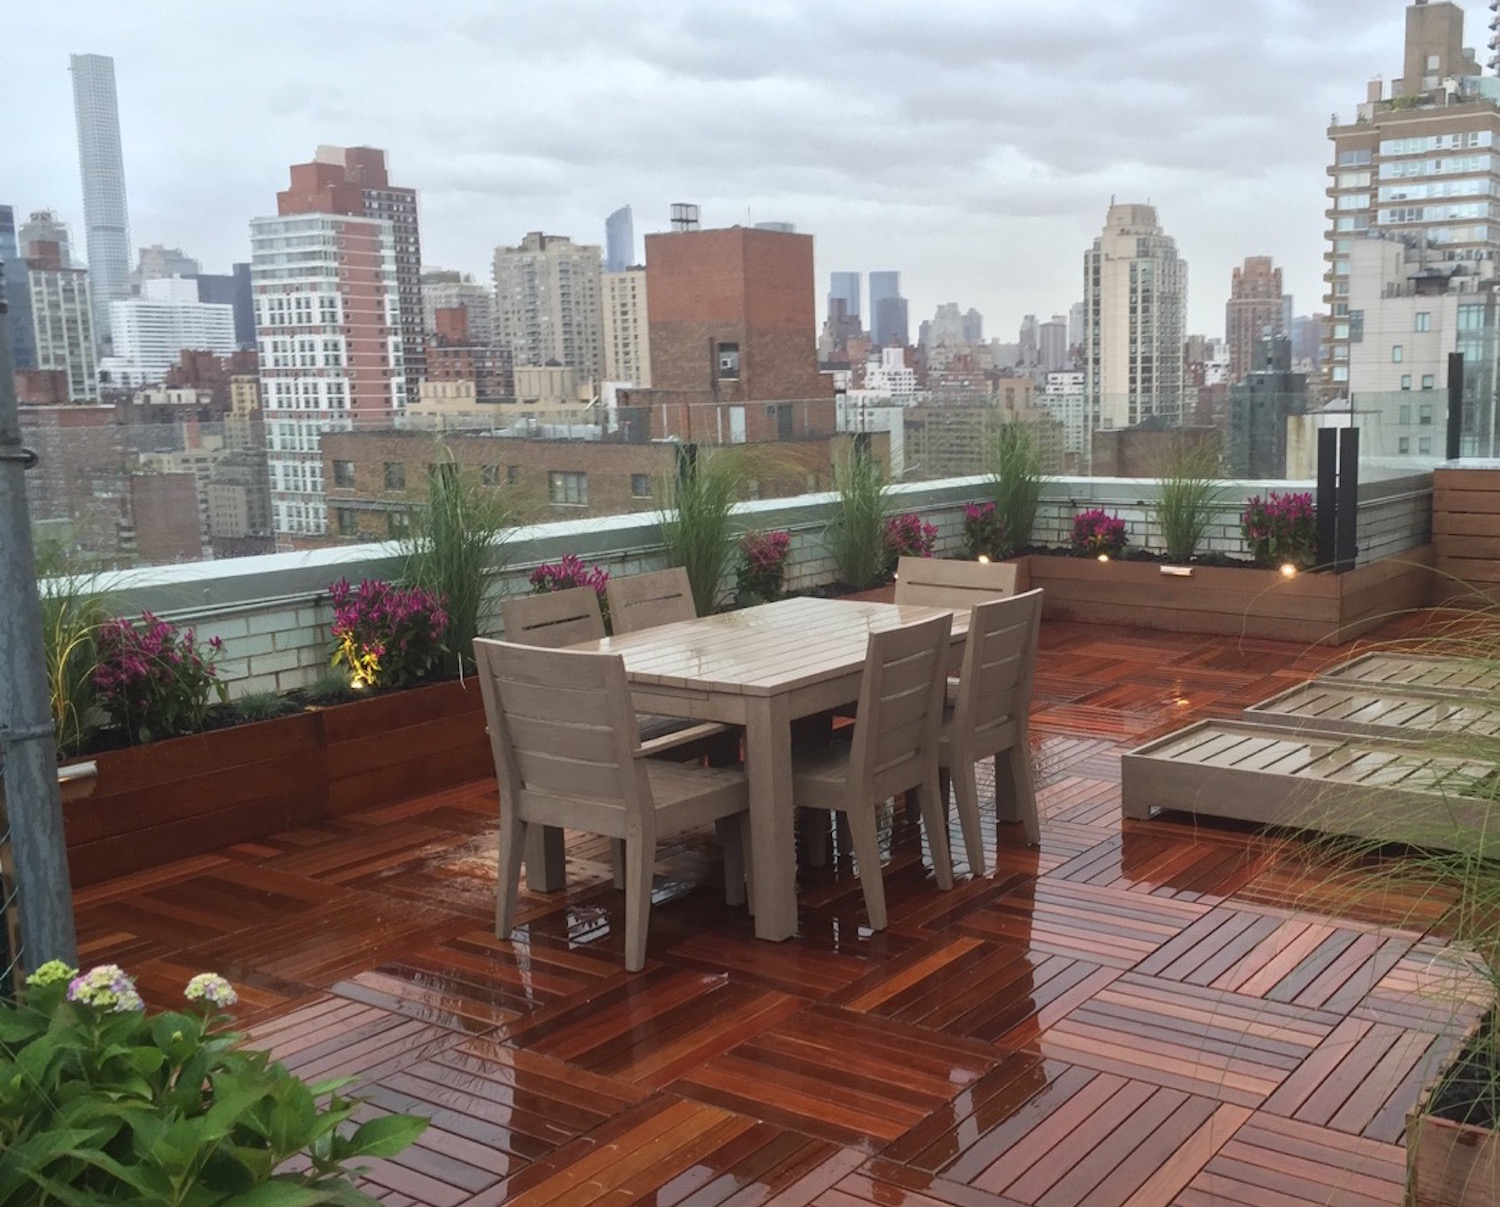 Nyc rooftop decks gardens roof decks new york roofscapes for Roof deck design